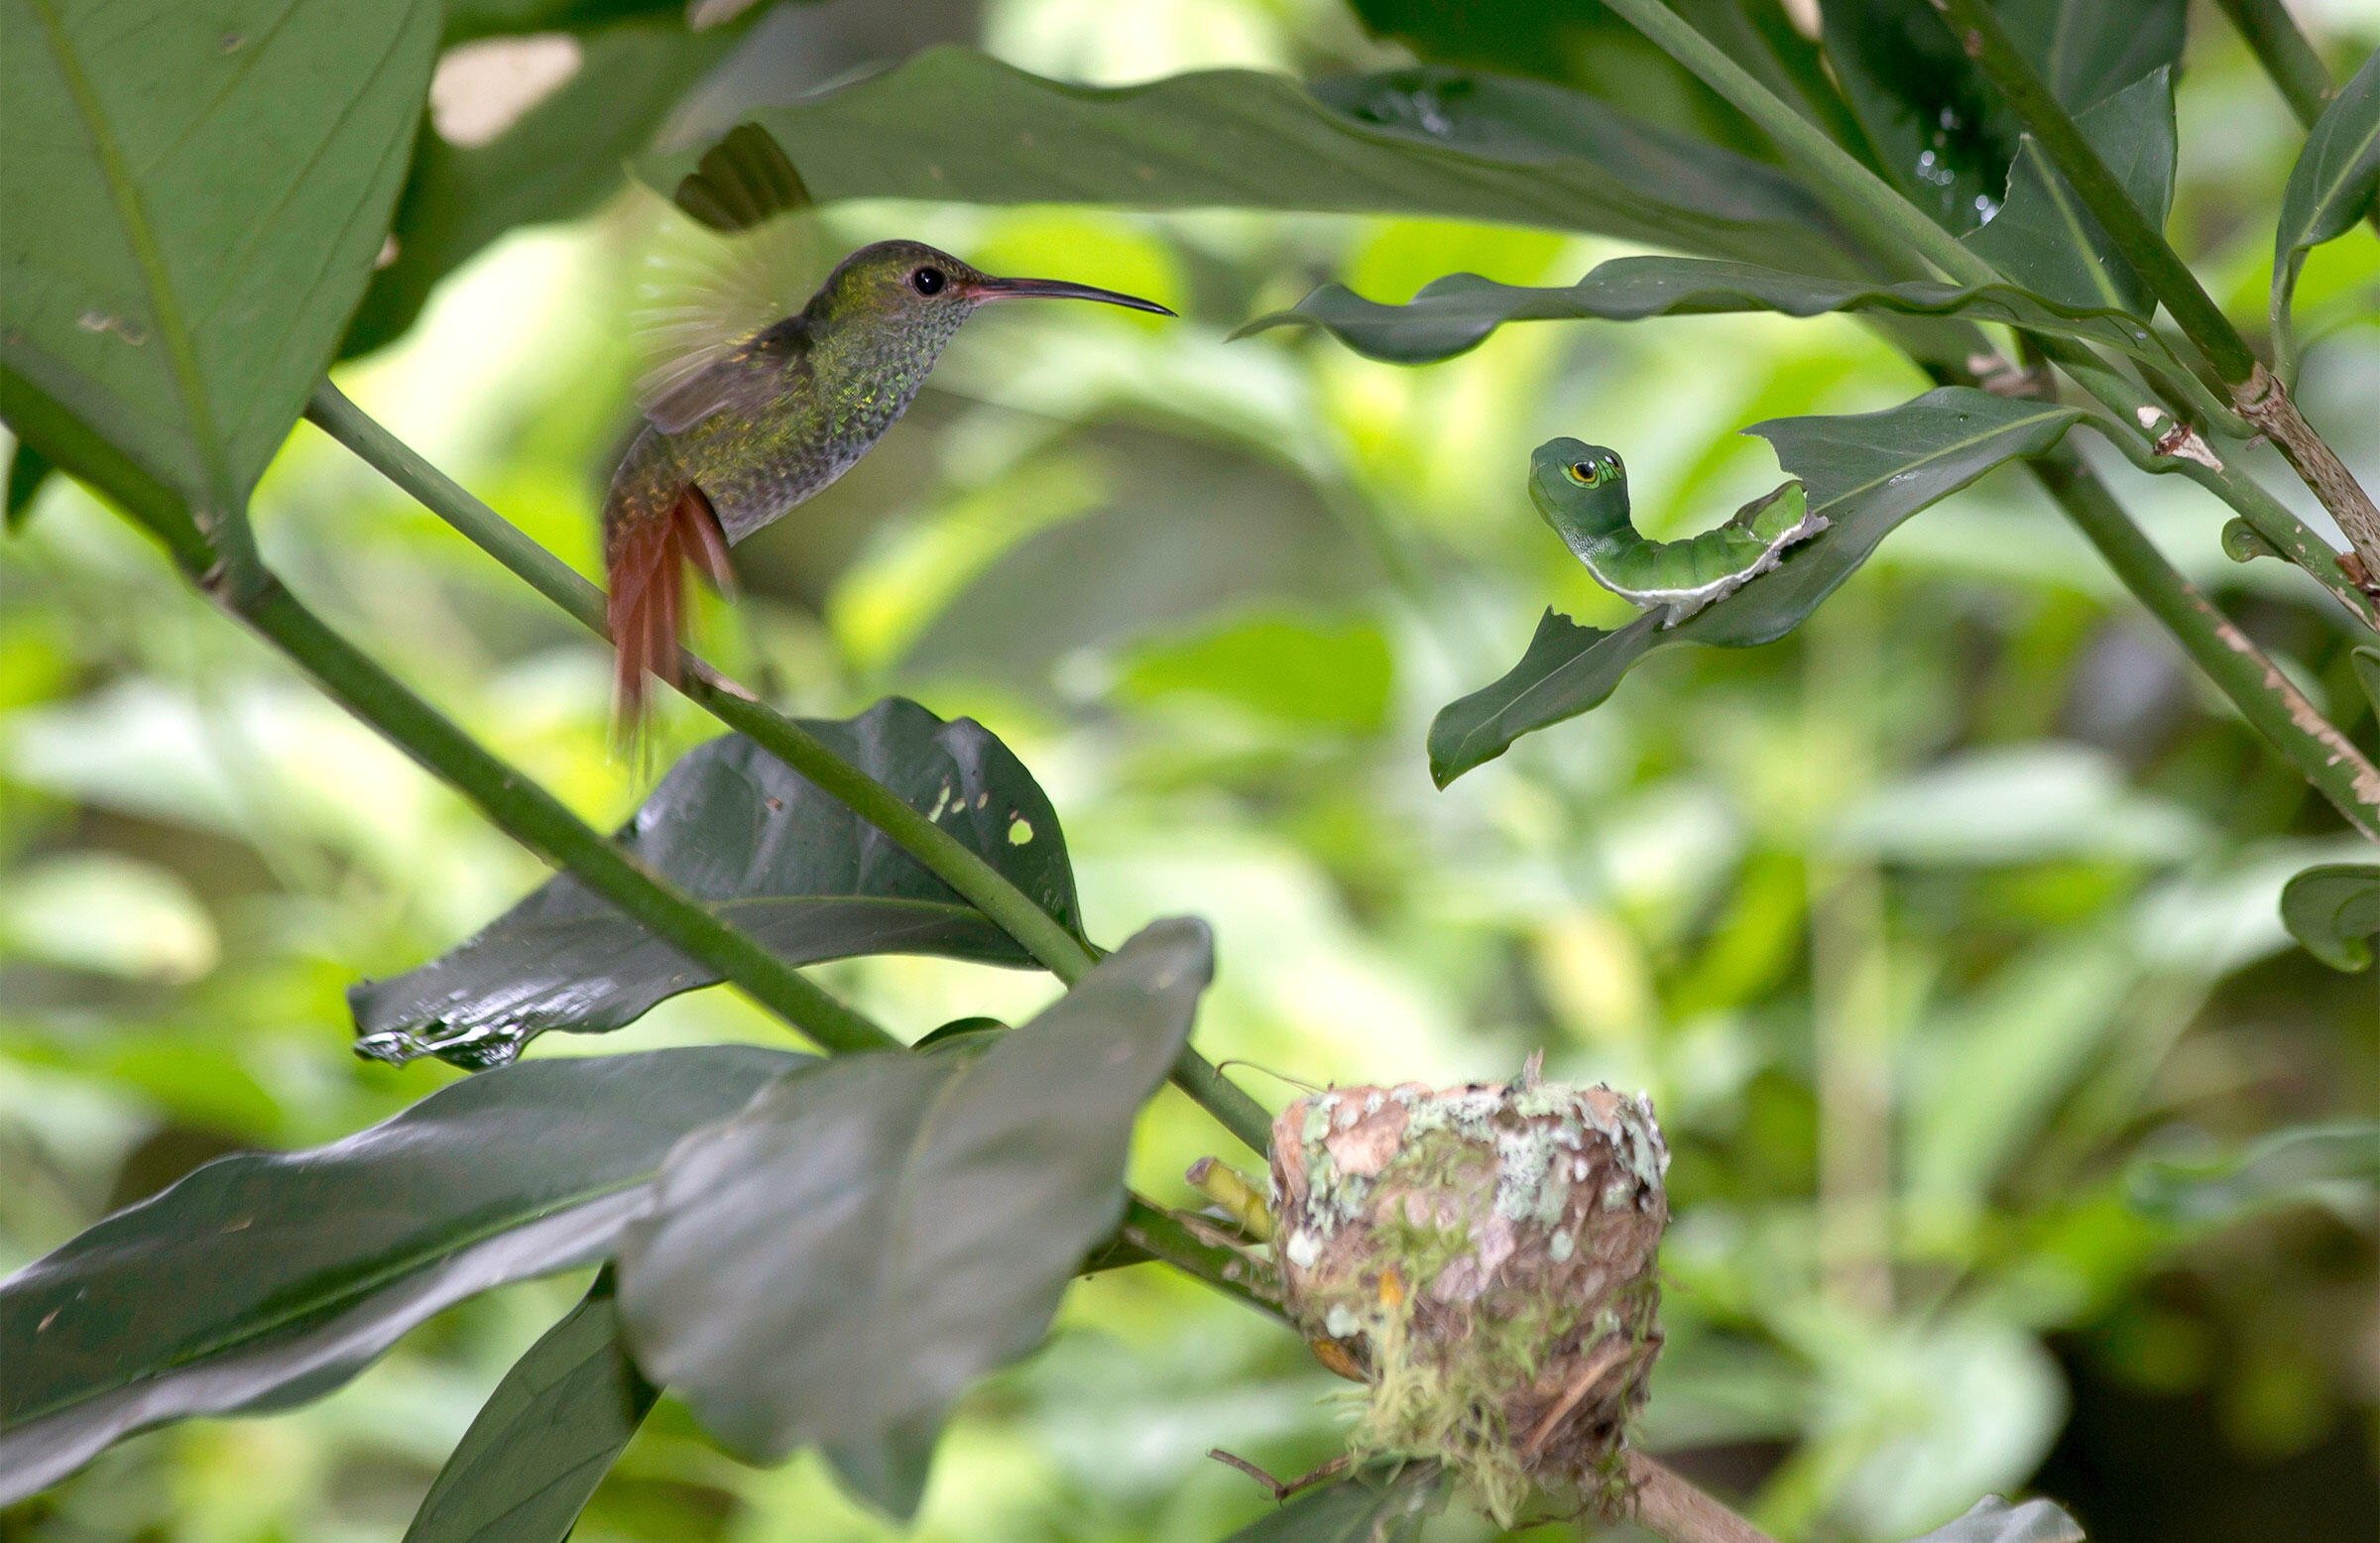 A female Rufous-tailed Hummingbird rears up to attack a Costa Rica leaf moth caterpillar. This close-up image was captured by a trained biologist with minimal disturbance to the bird and its nest (so don't try it at home!). Jim Marden